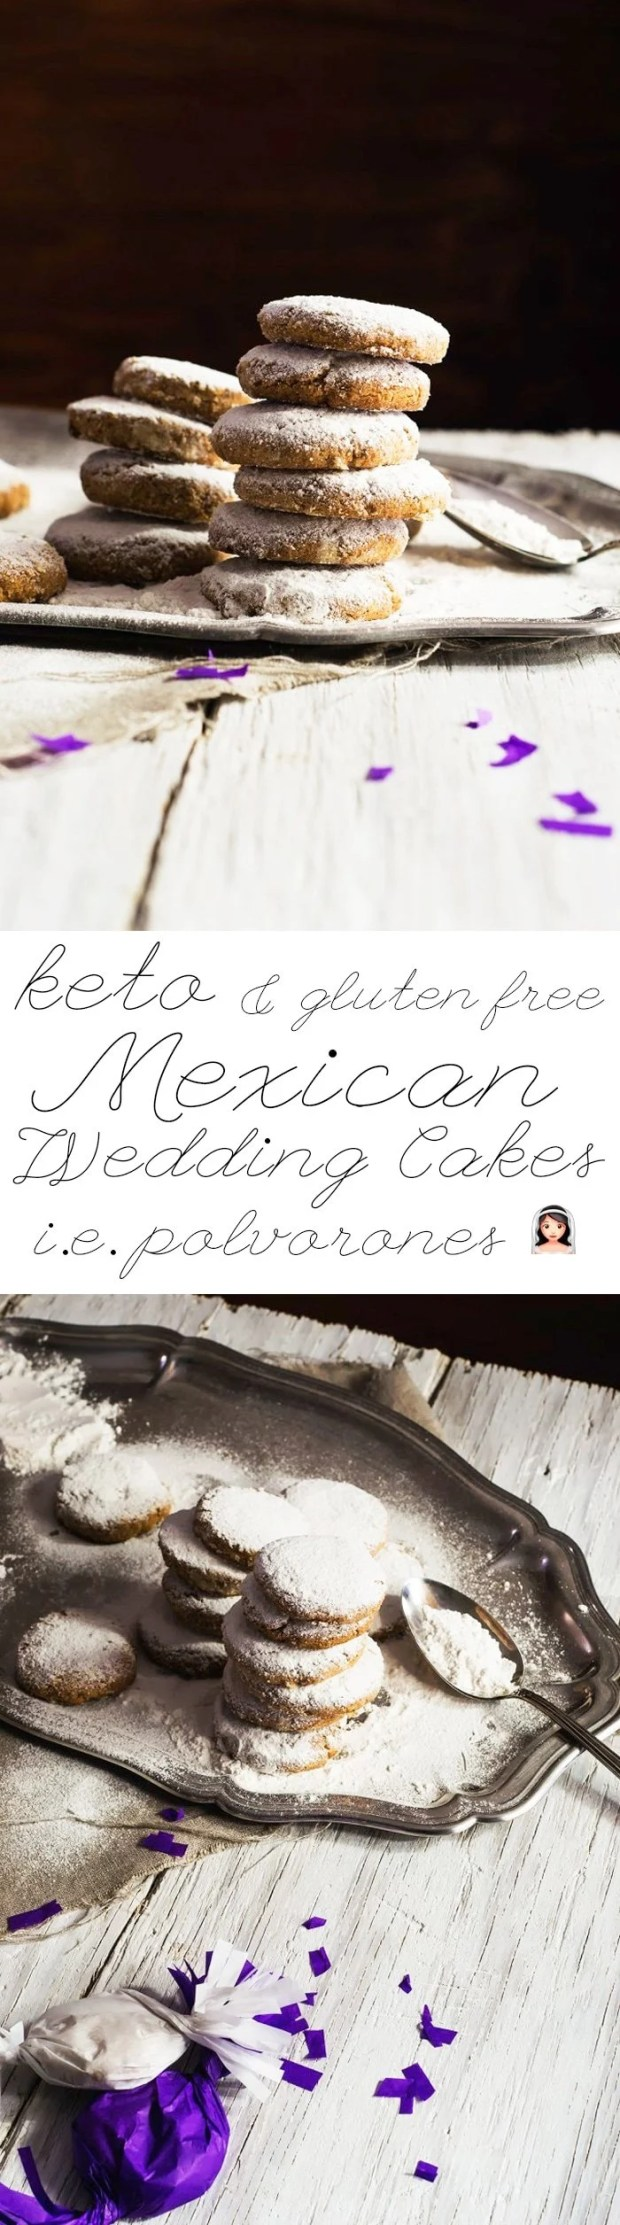 mexican wedding cakes history gluten free amp keto mexican wedding cakes i e russian 17316